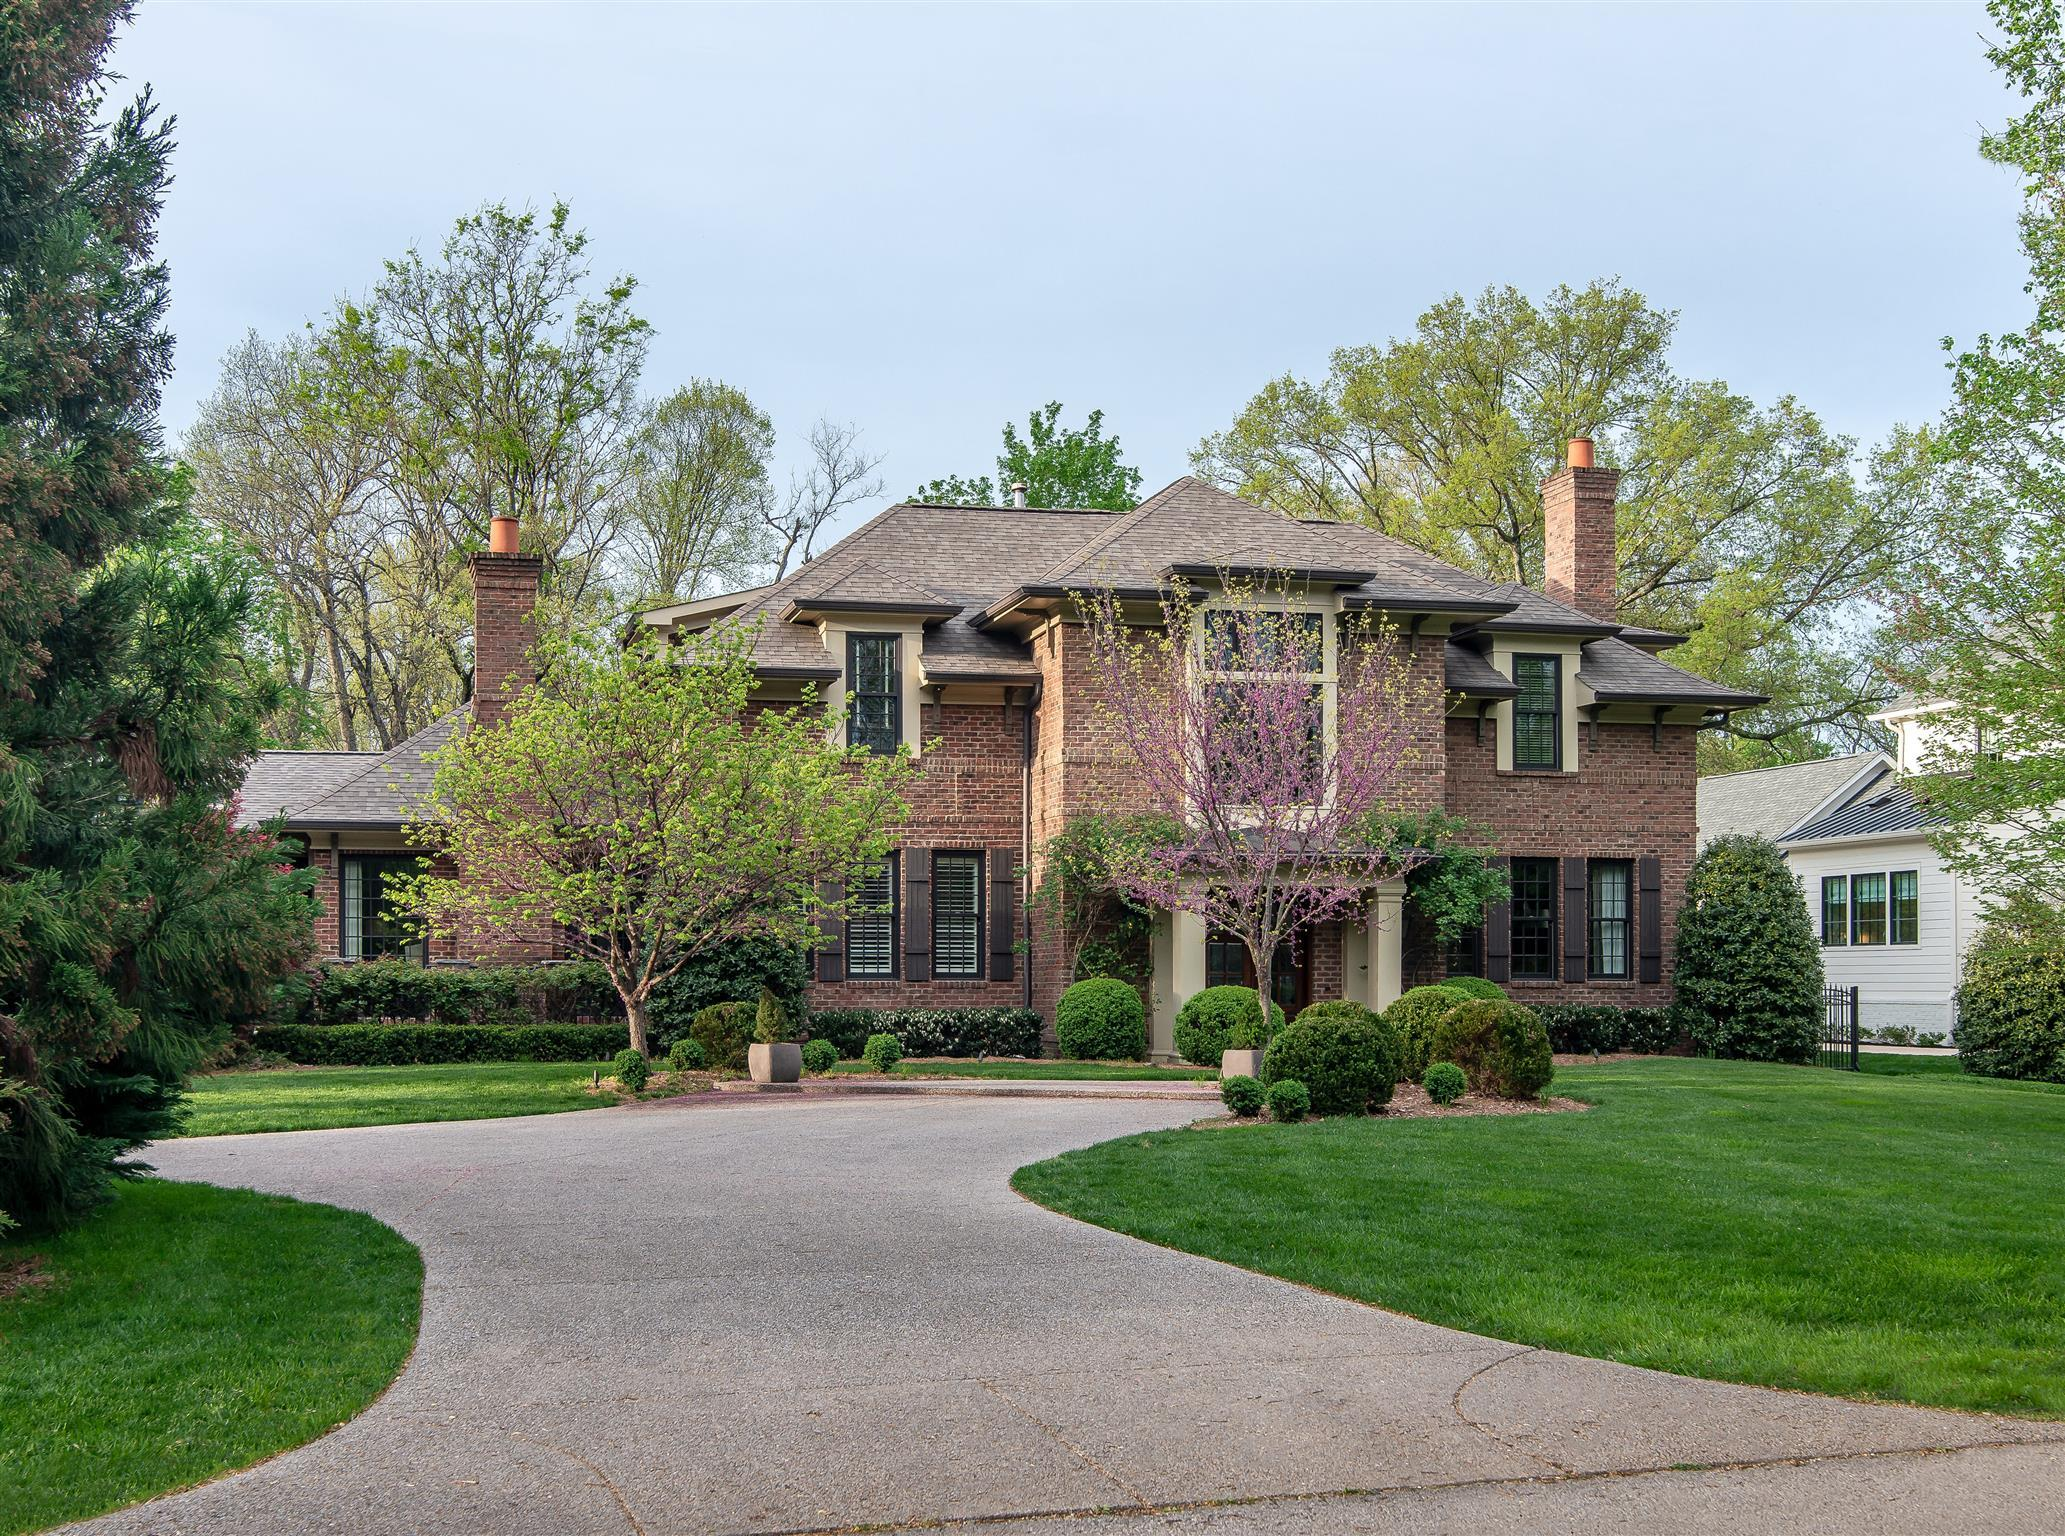 $2,279,000 - 5Br/6Ba -  for Sale in Stokes Tract, Nashville